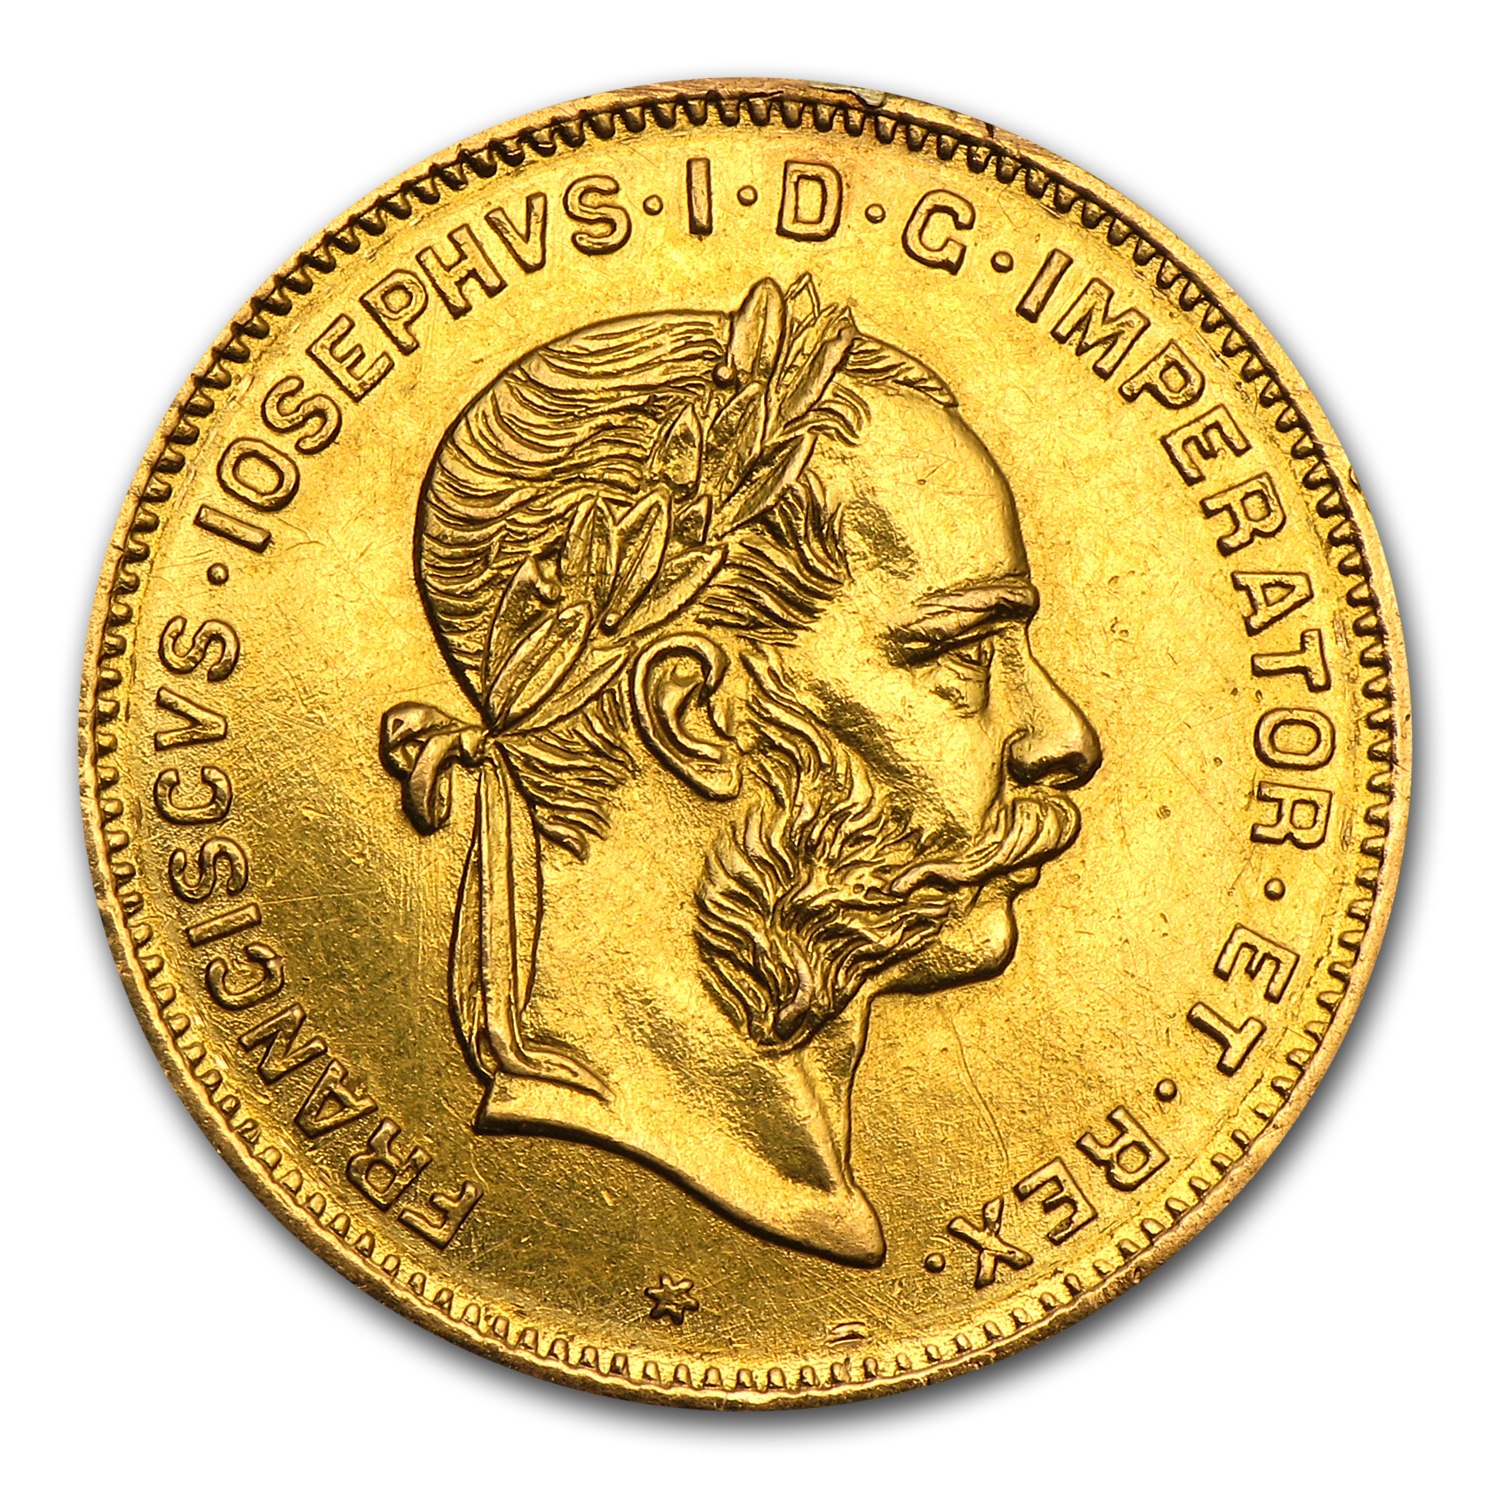 Austria 1892 10 Francs (4 Florin) Gold Coin Jewelry Piece